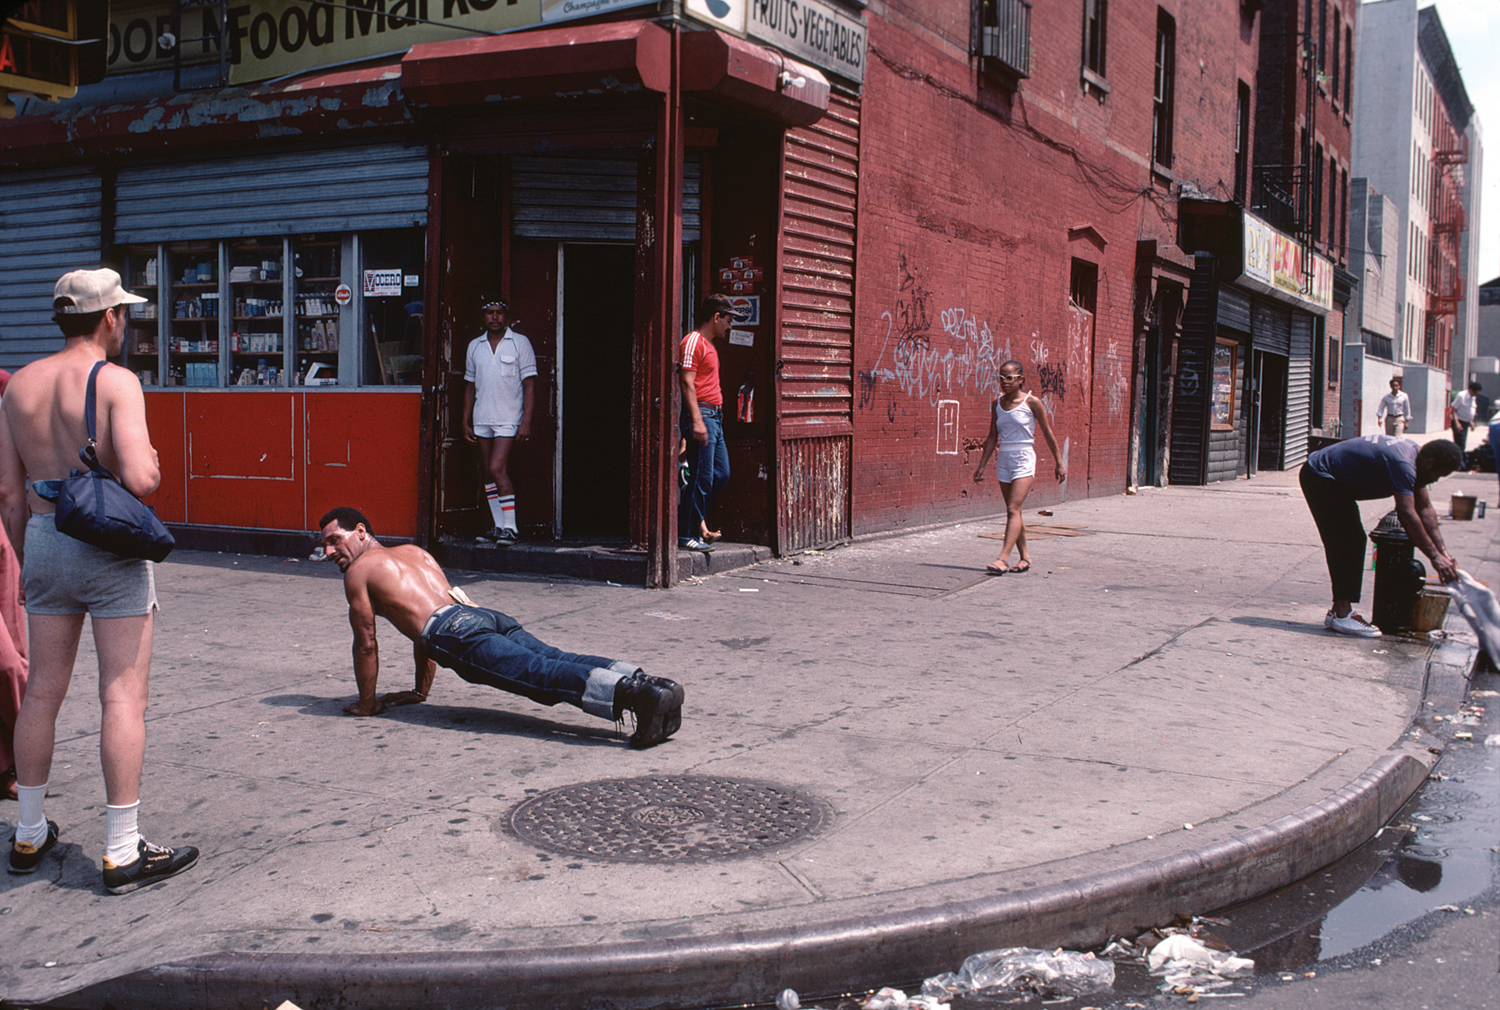 1 Bedroom Apartments In The Bronx 35 Intimate Photographs Captured New York S Puerto Rican